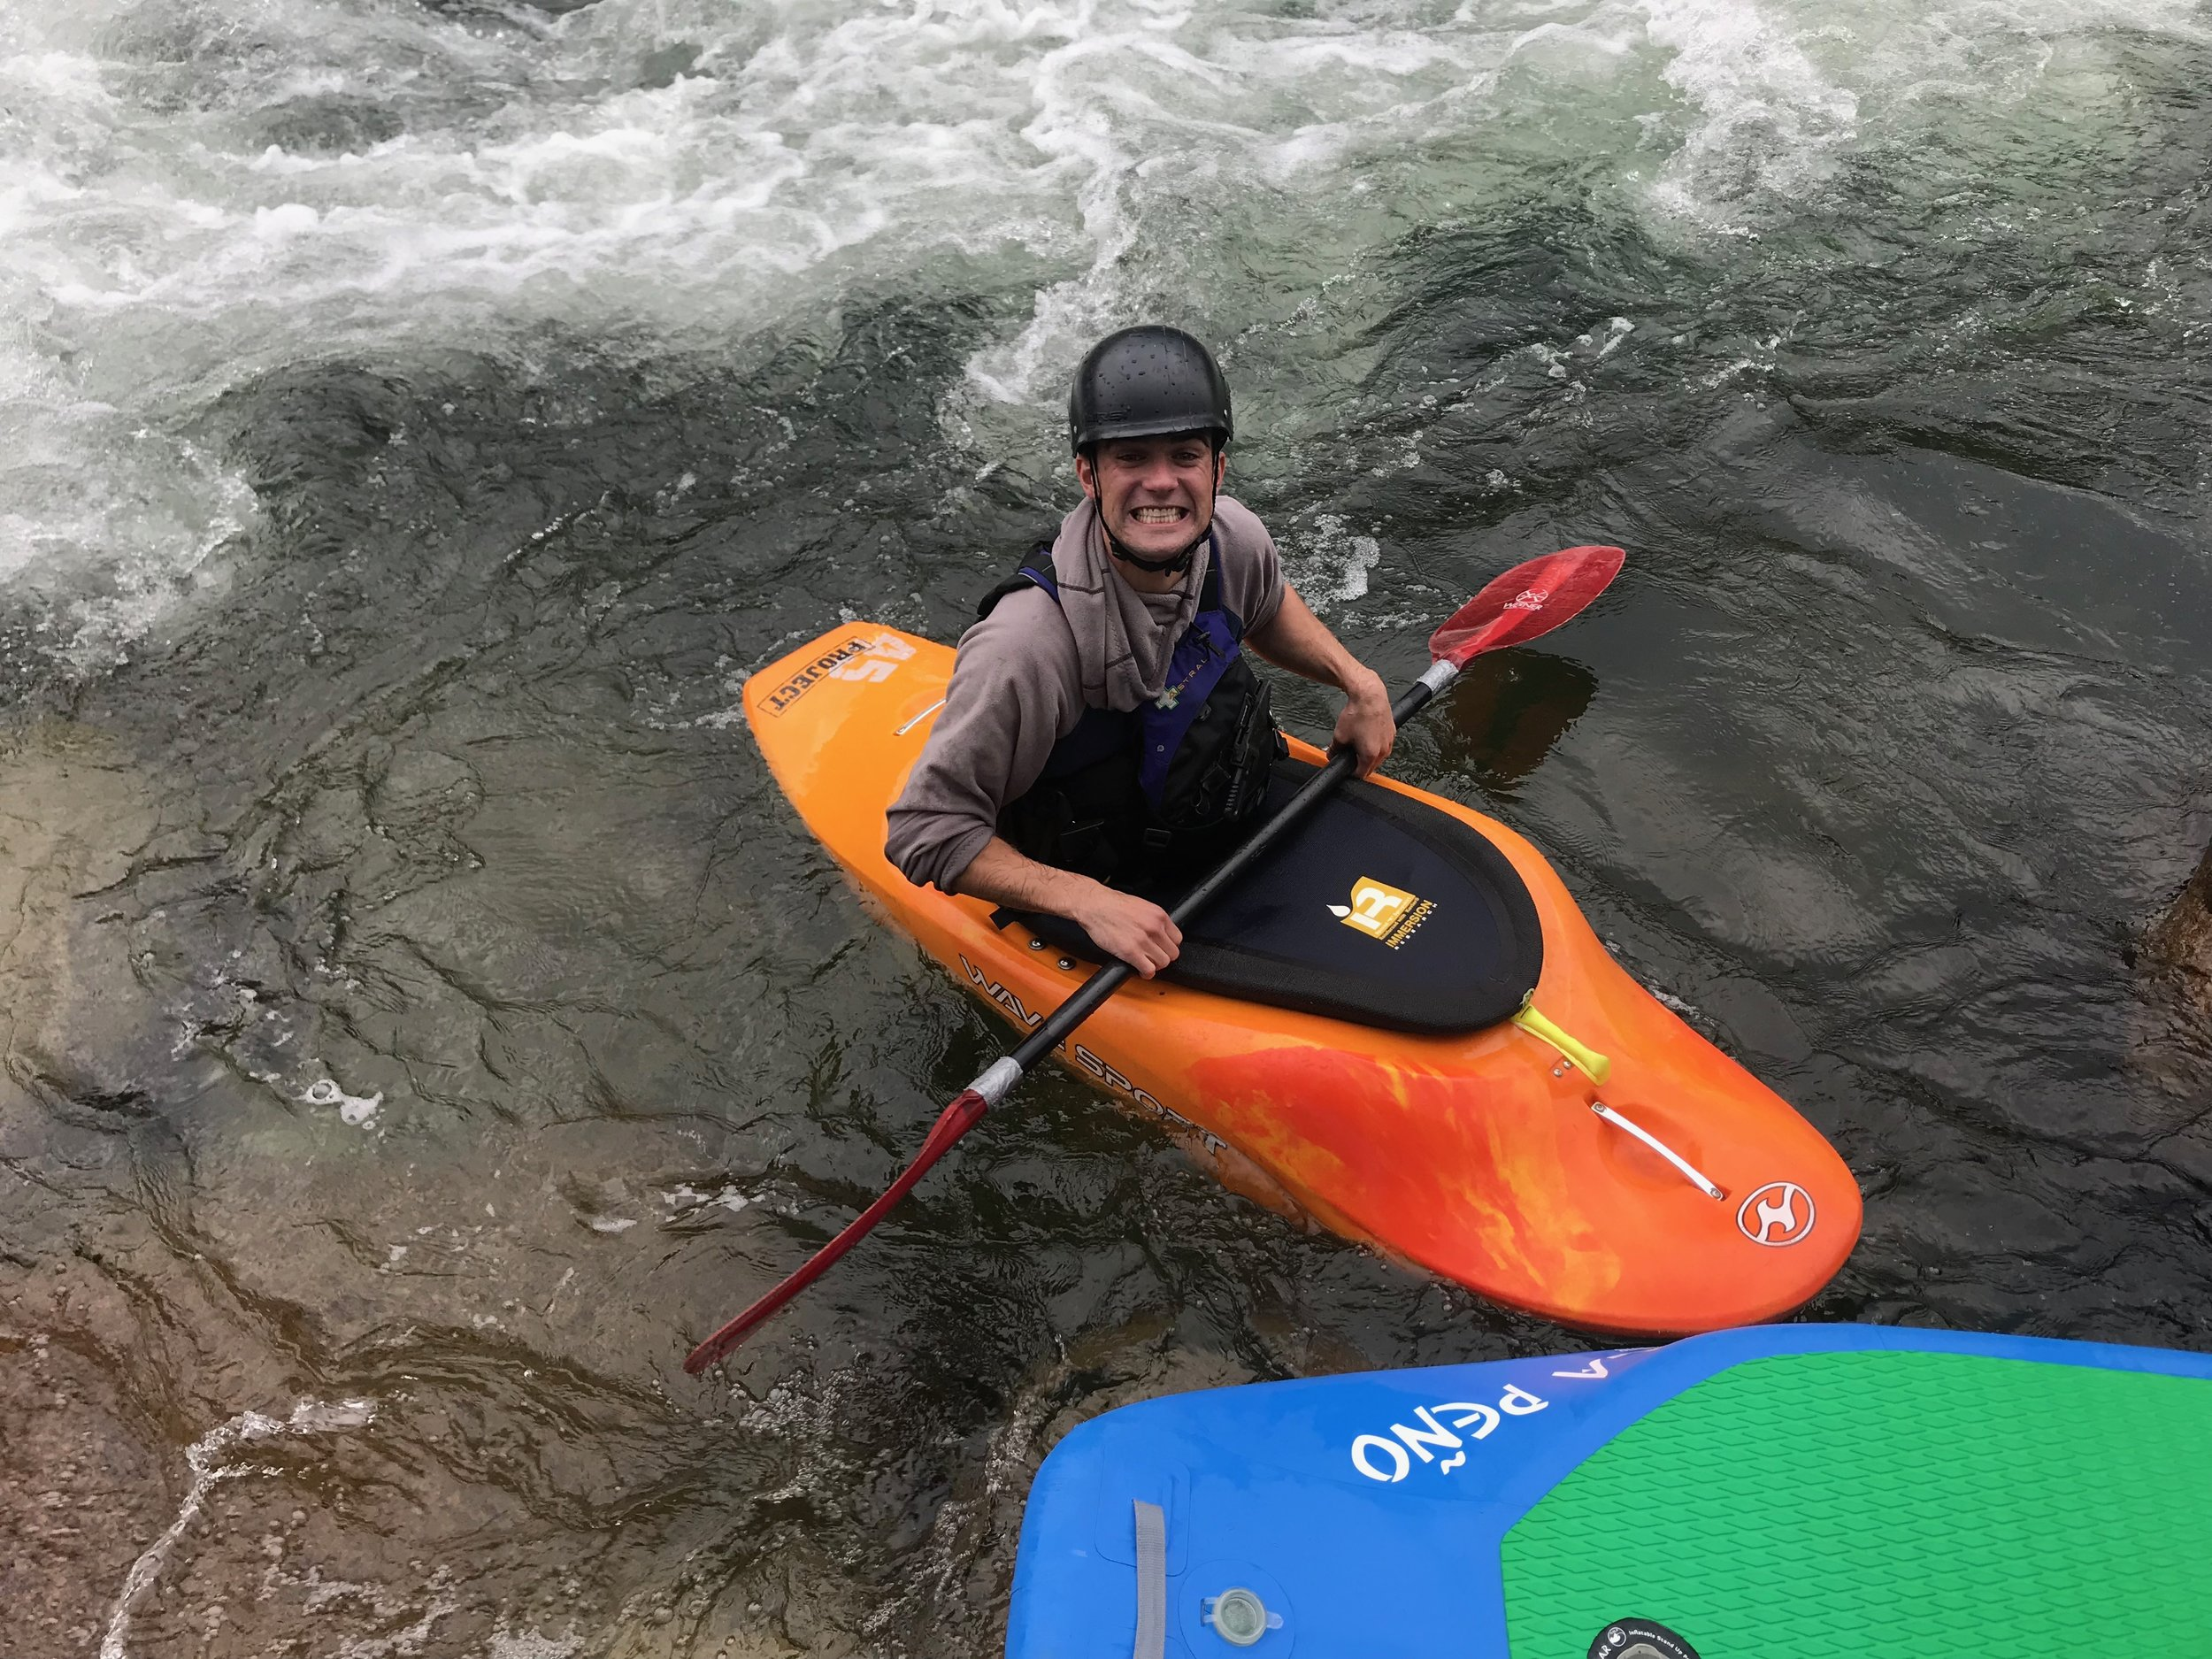 Fletcher is all smiles after taking his kayak for a spin on the wave.